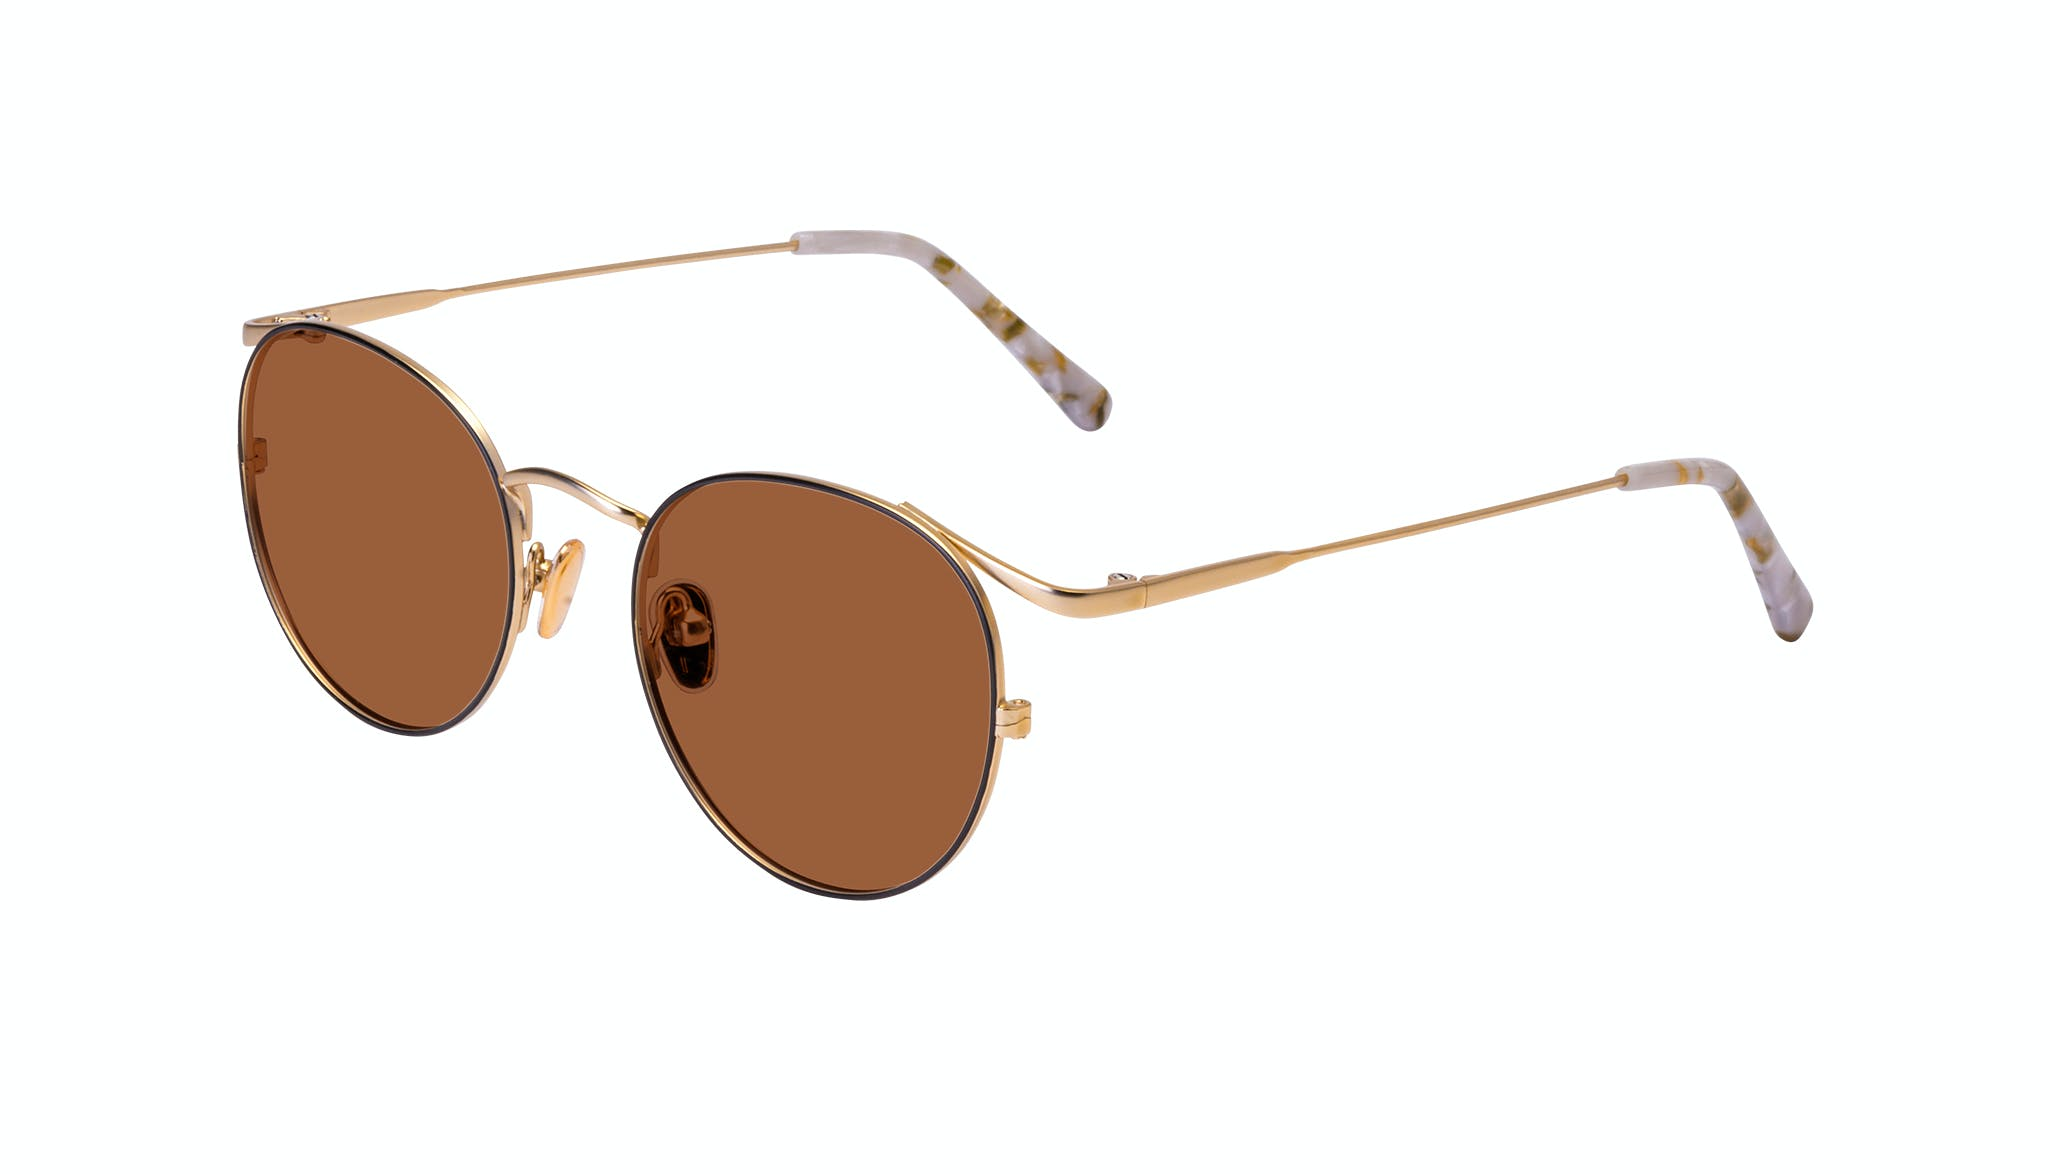 Affordable Fashion Glasses Round Sunglasses Women Curve Deep Gold Tilt